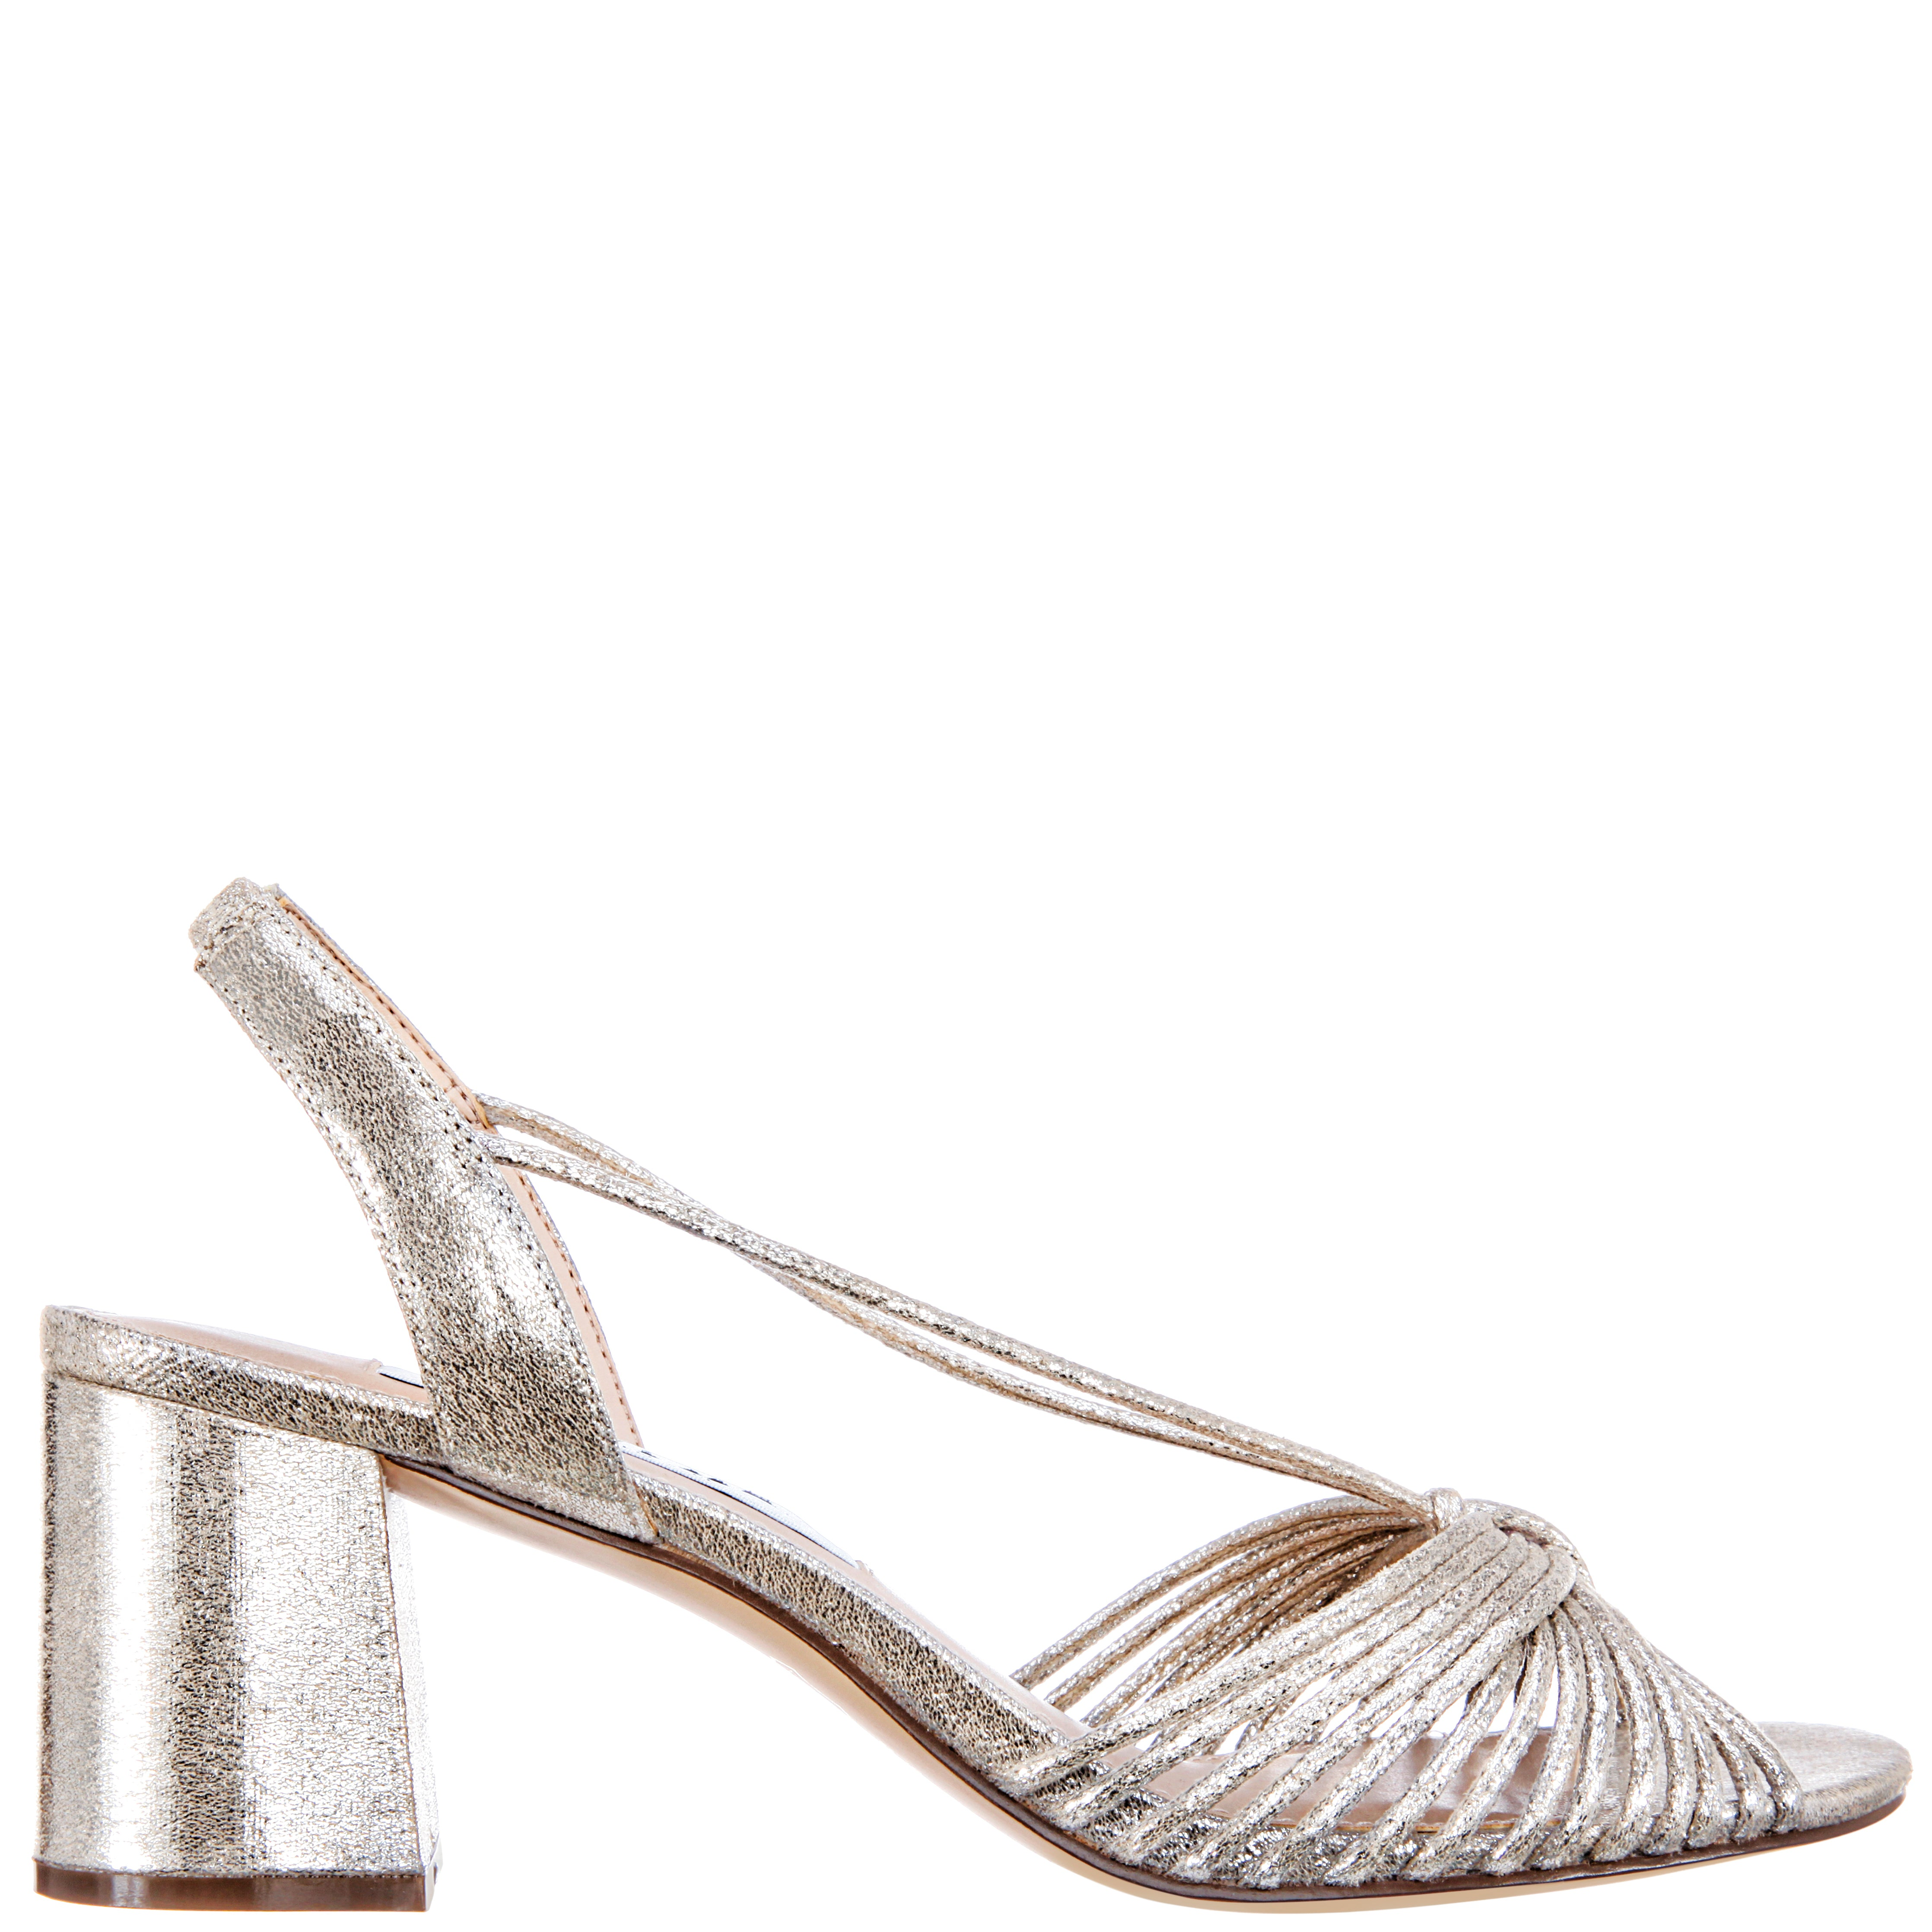 NADELYN-NEW SILVER REFLECTIVE SUEDETTE - NEW SILVER